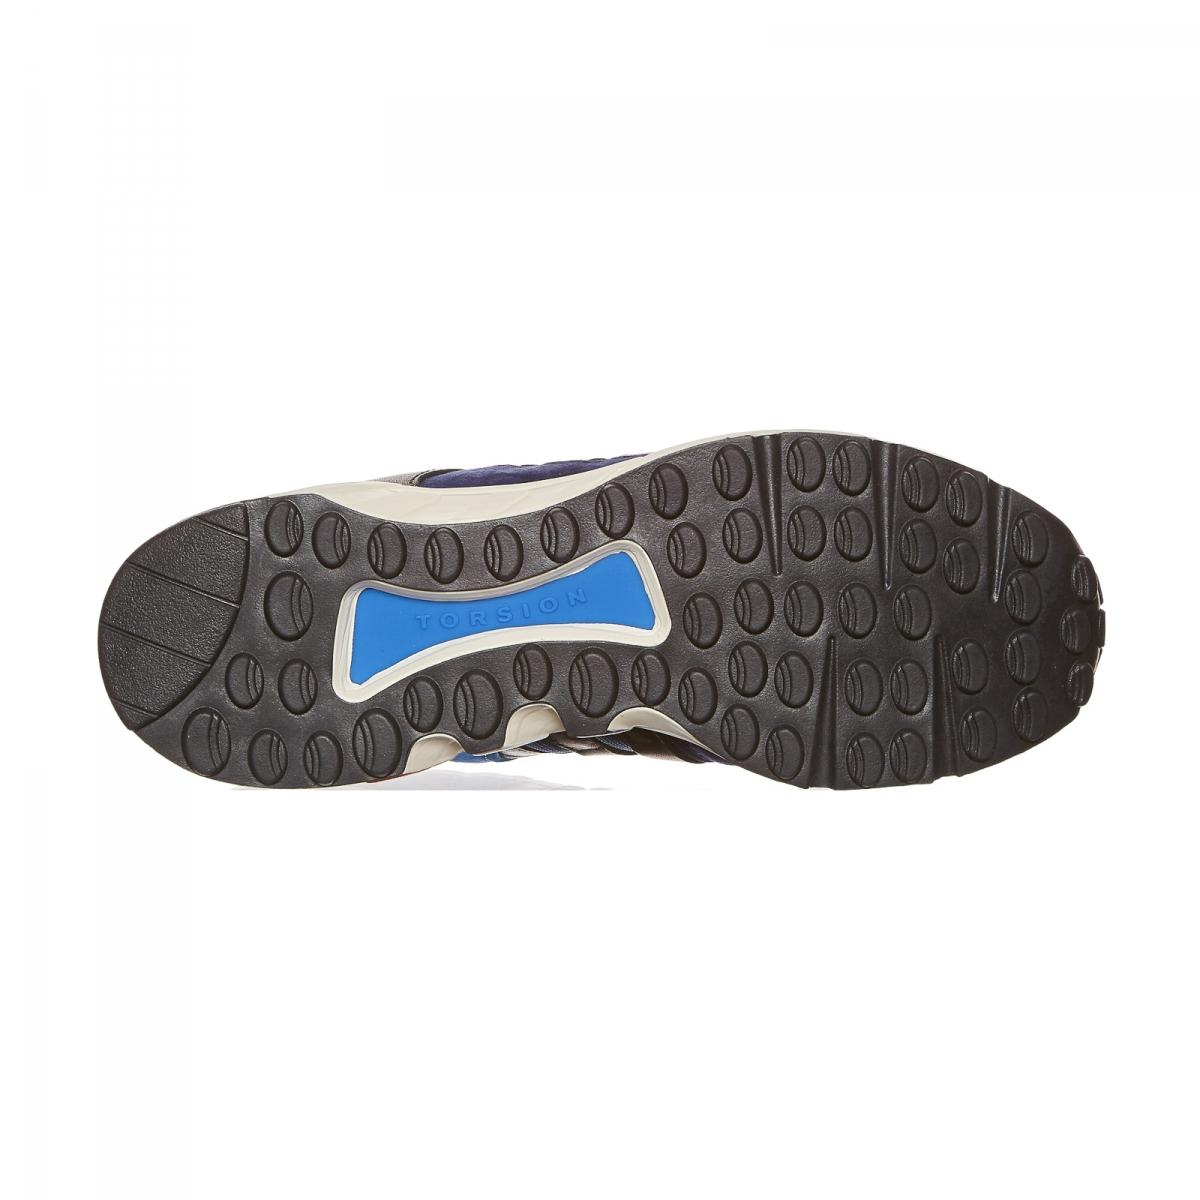 separation shoes a73b3 ed3a3 adidas Originals Colette X Undefeated X Eqt Support Refined Sneakers ...